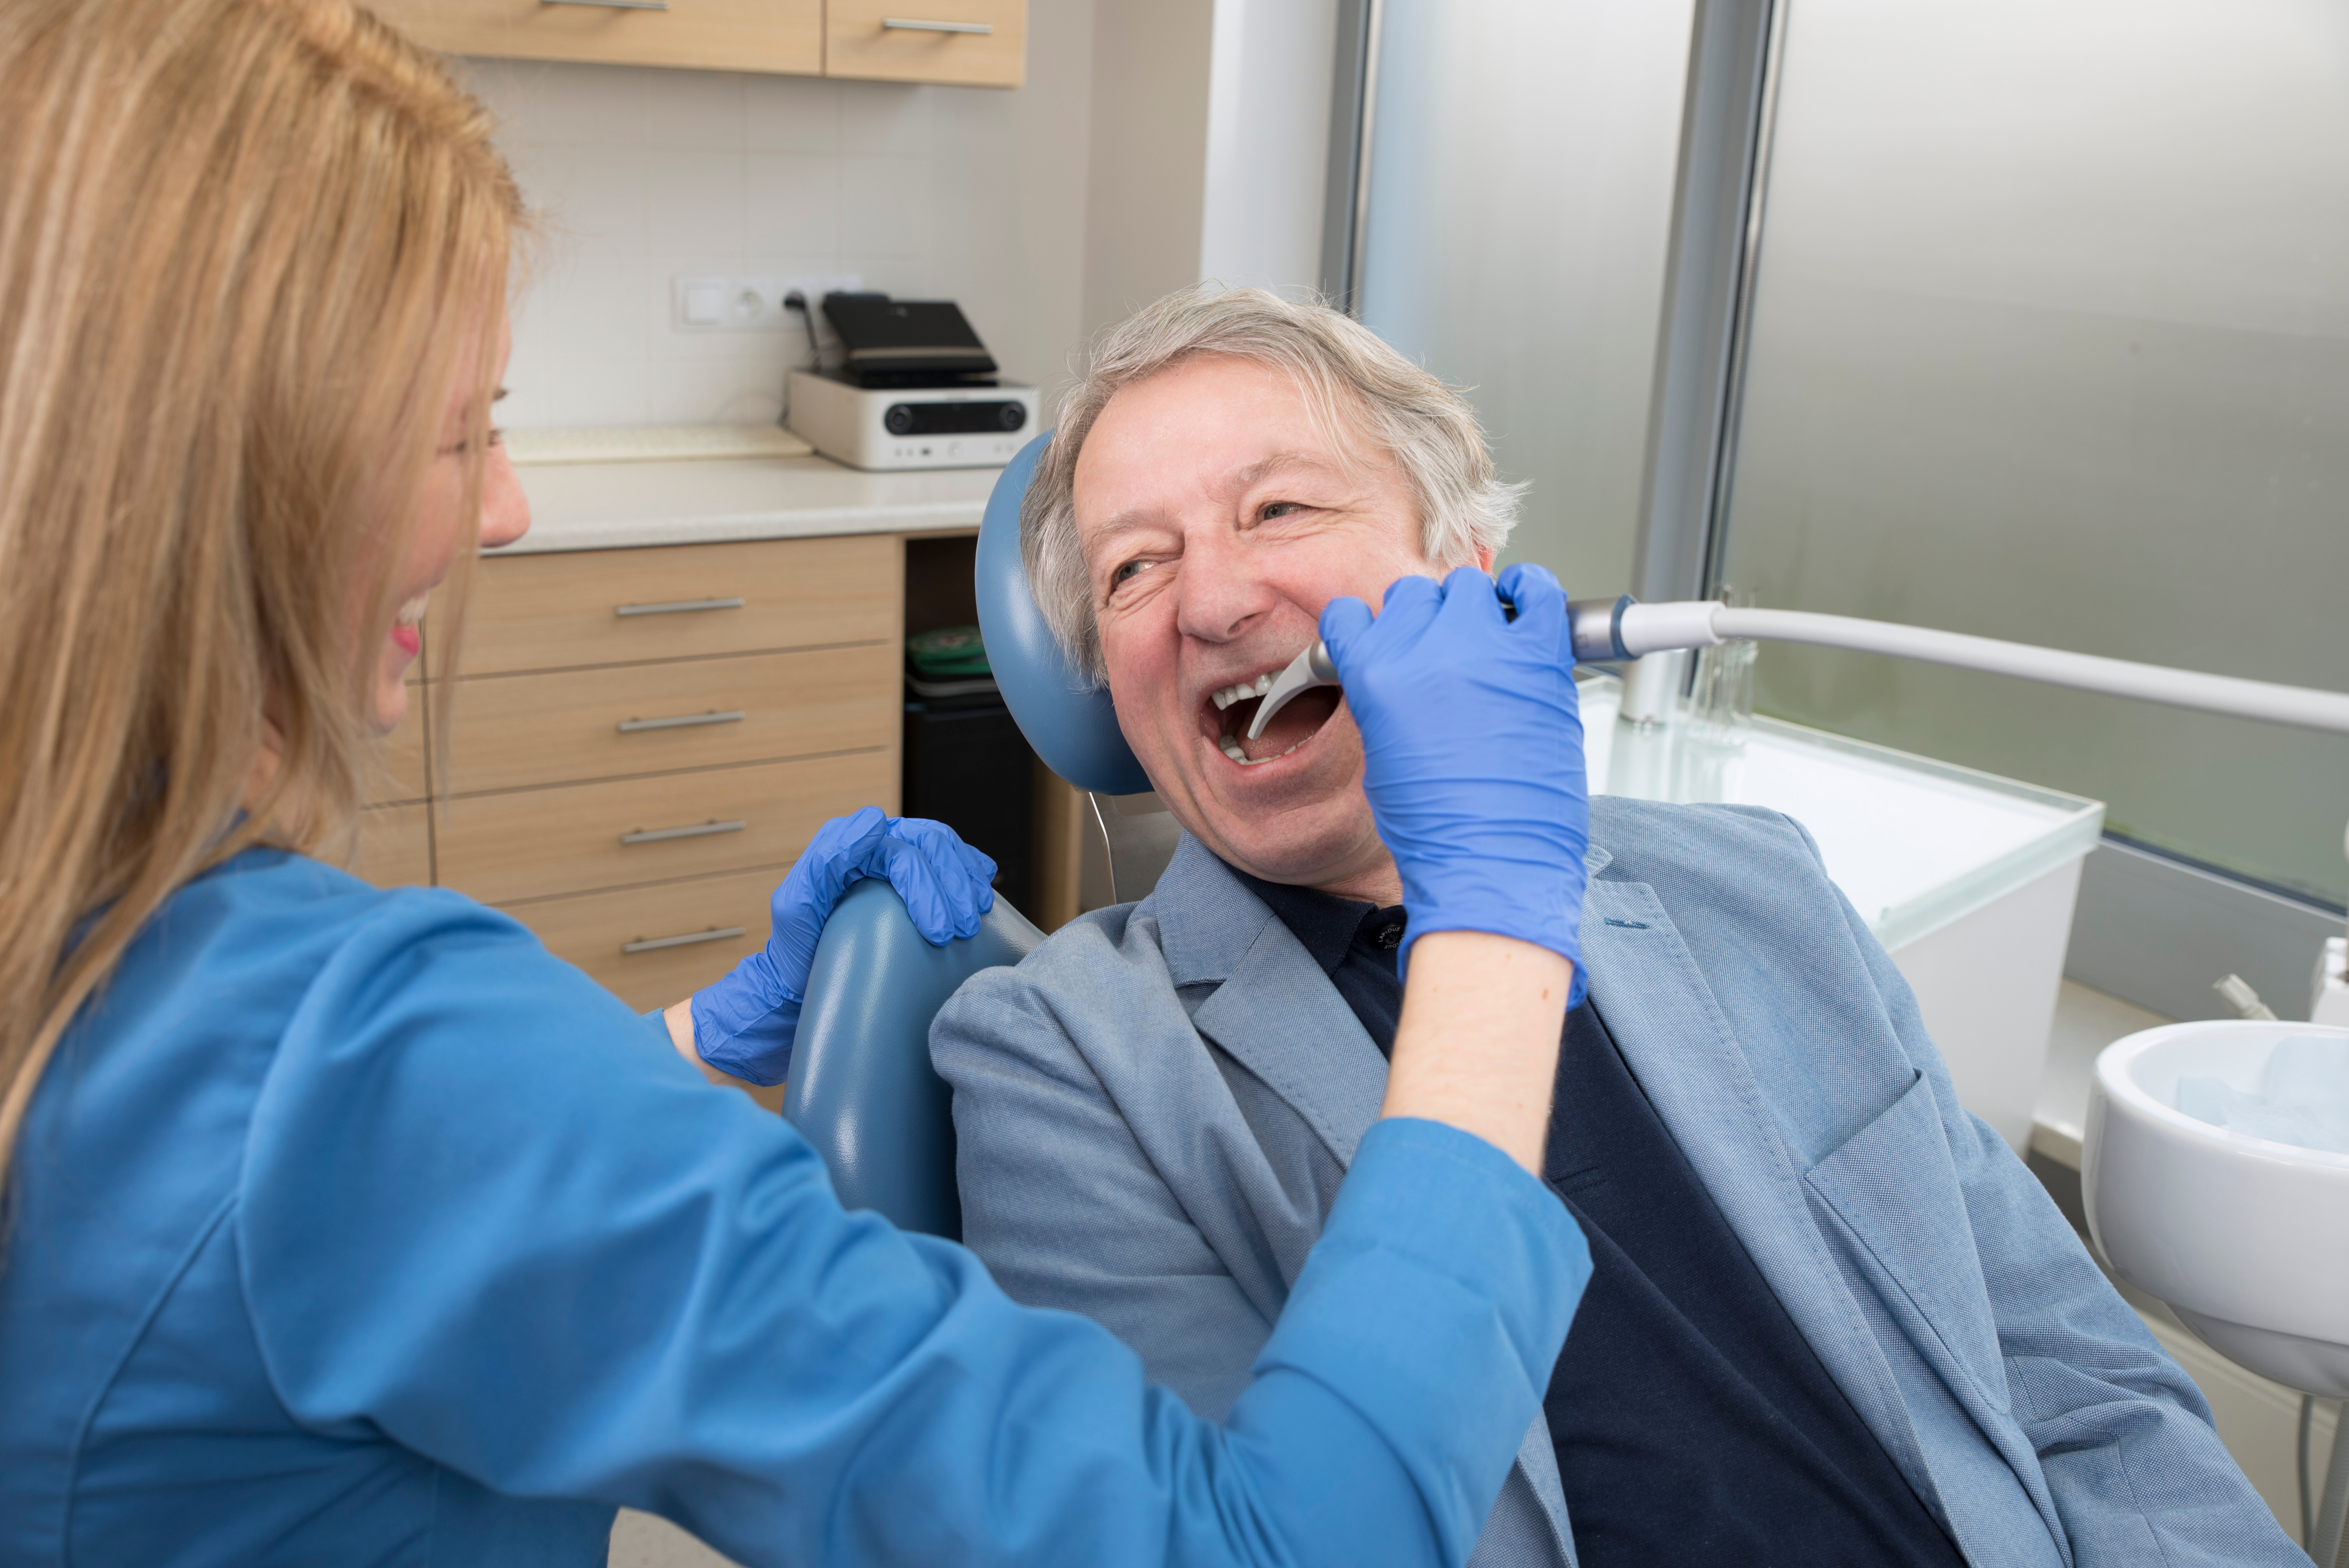 Find a top-rated dentist nearby